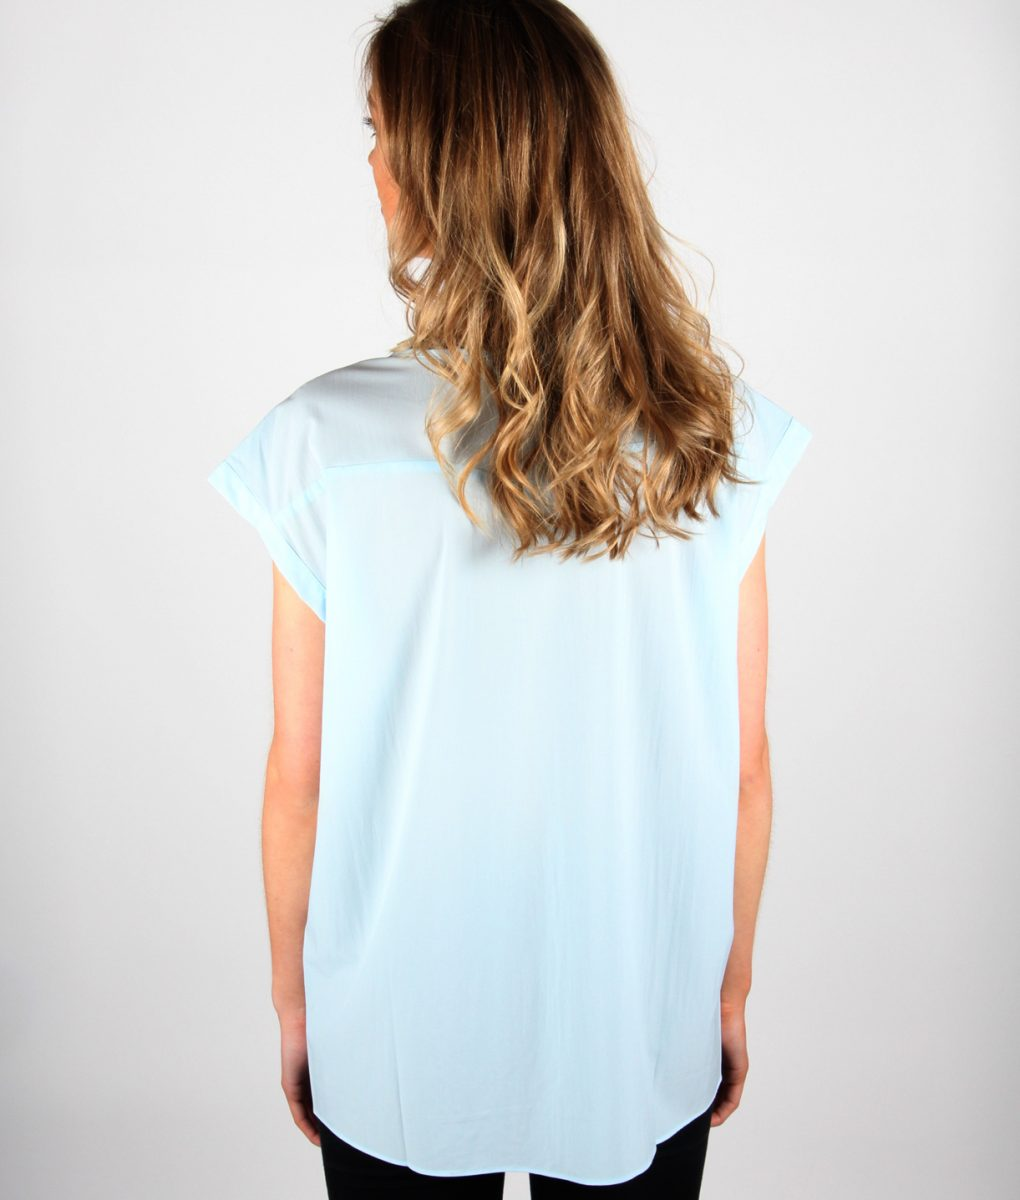 French Alila baby Blue V-detail top back